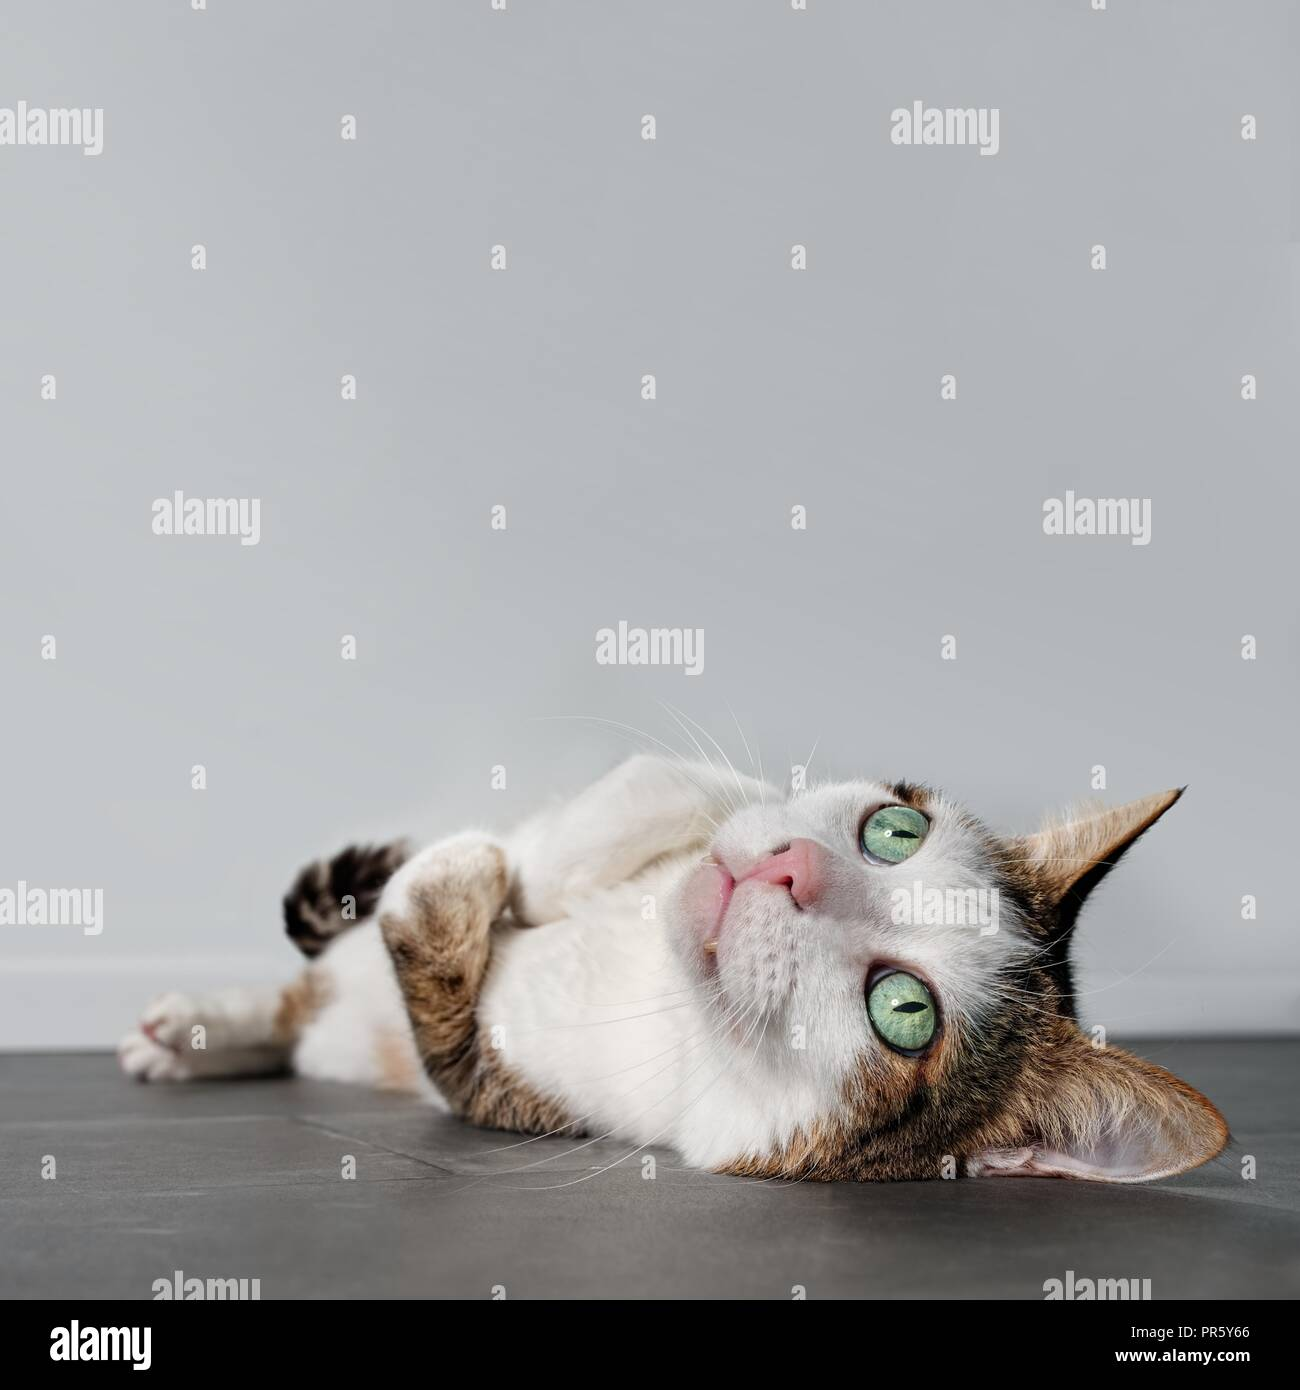 Satisfied tabby cat laying relaxed down on the ground and looking up. - Stock Image